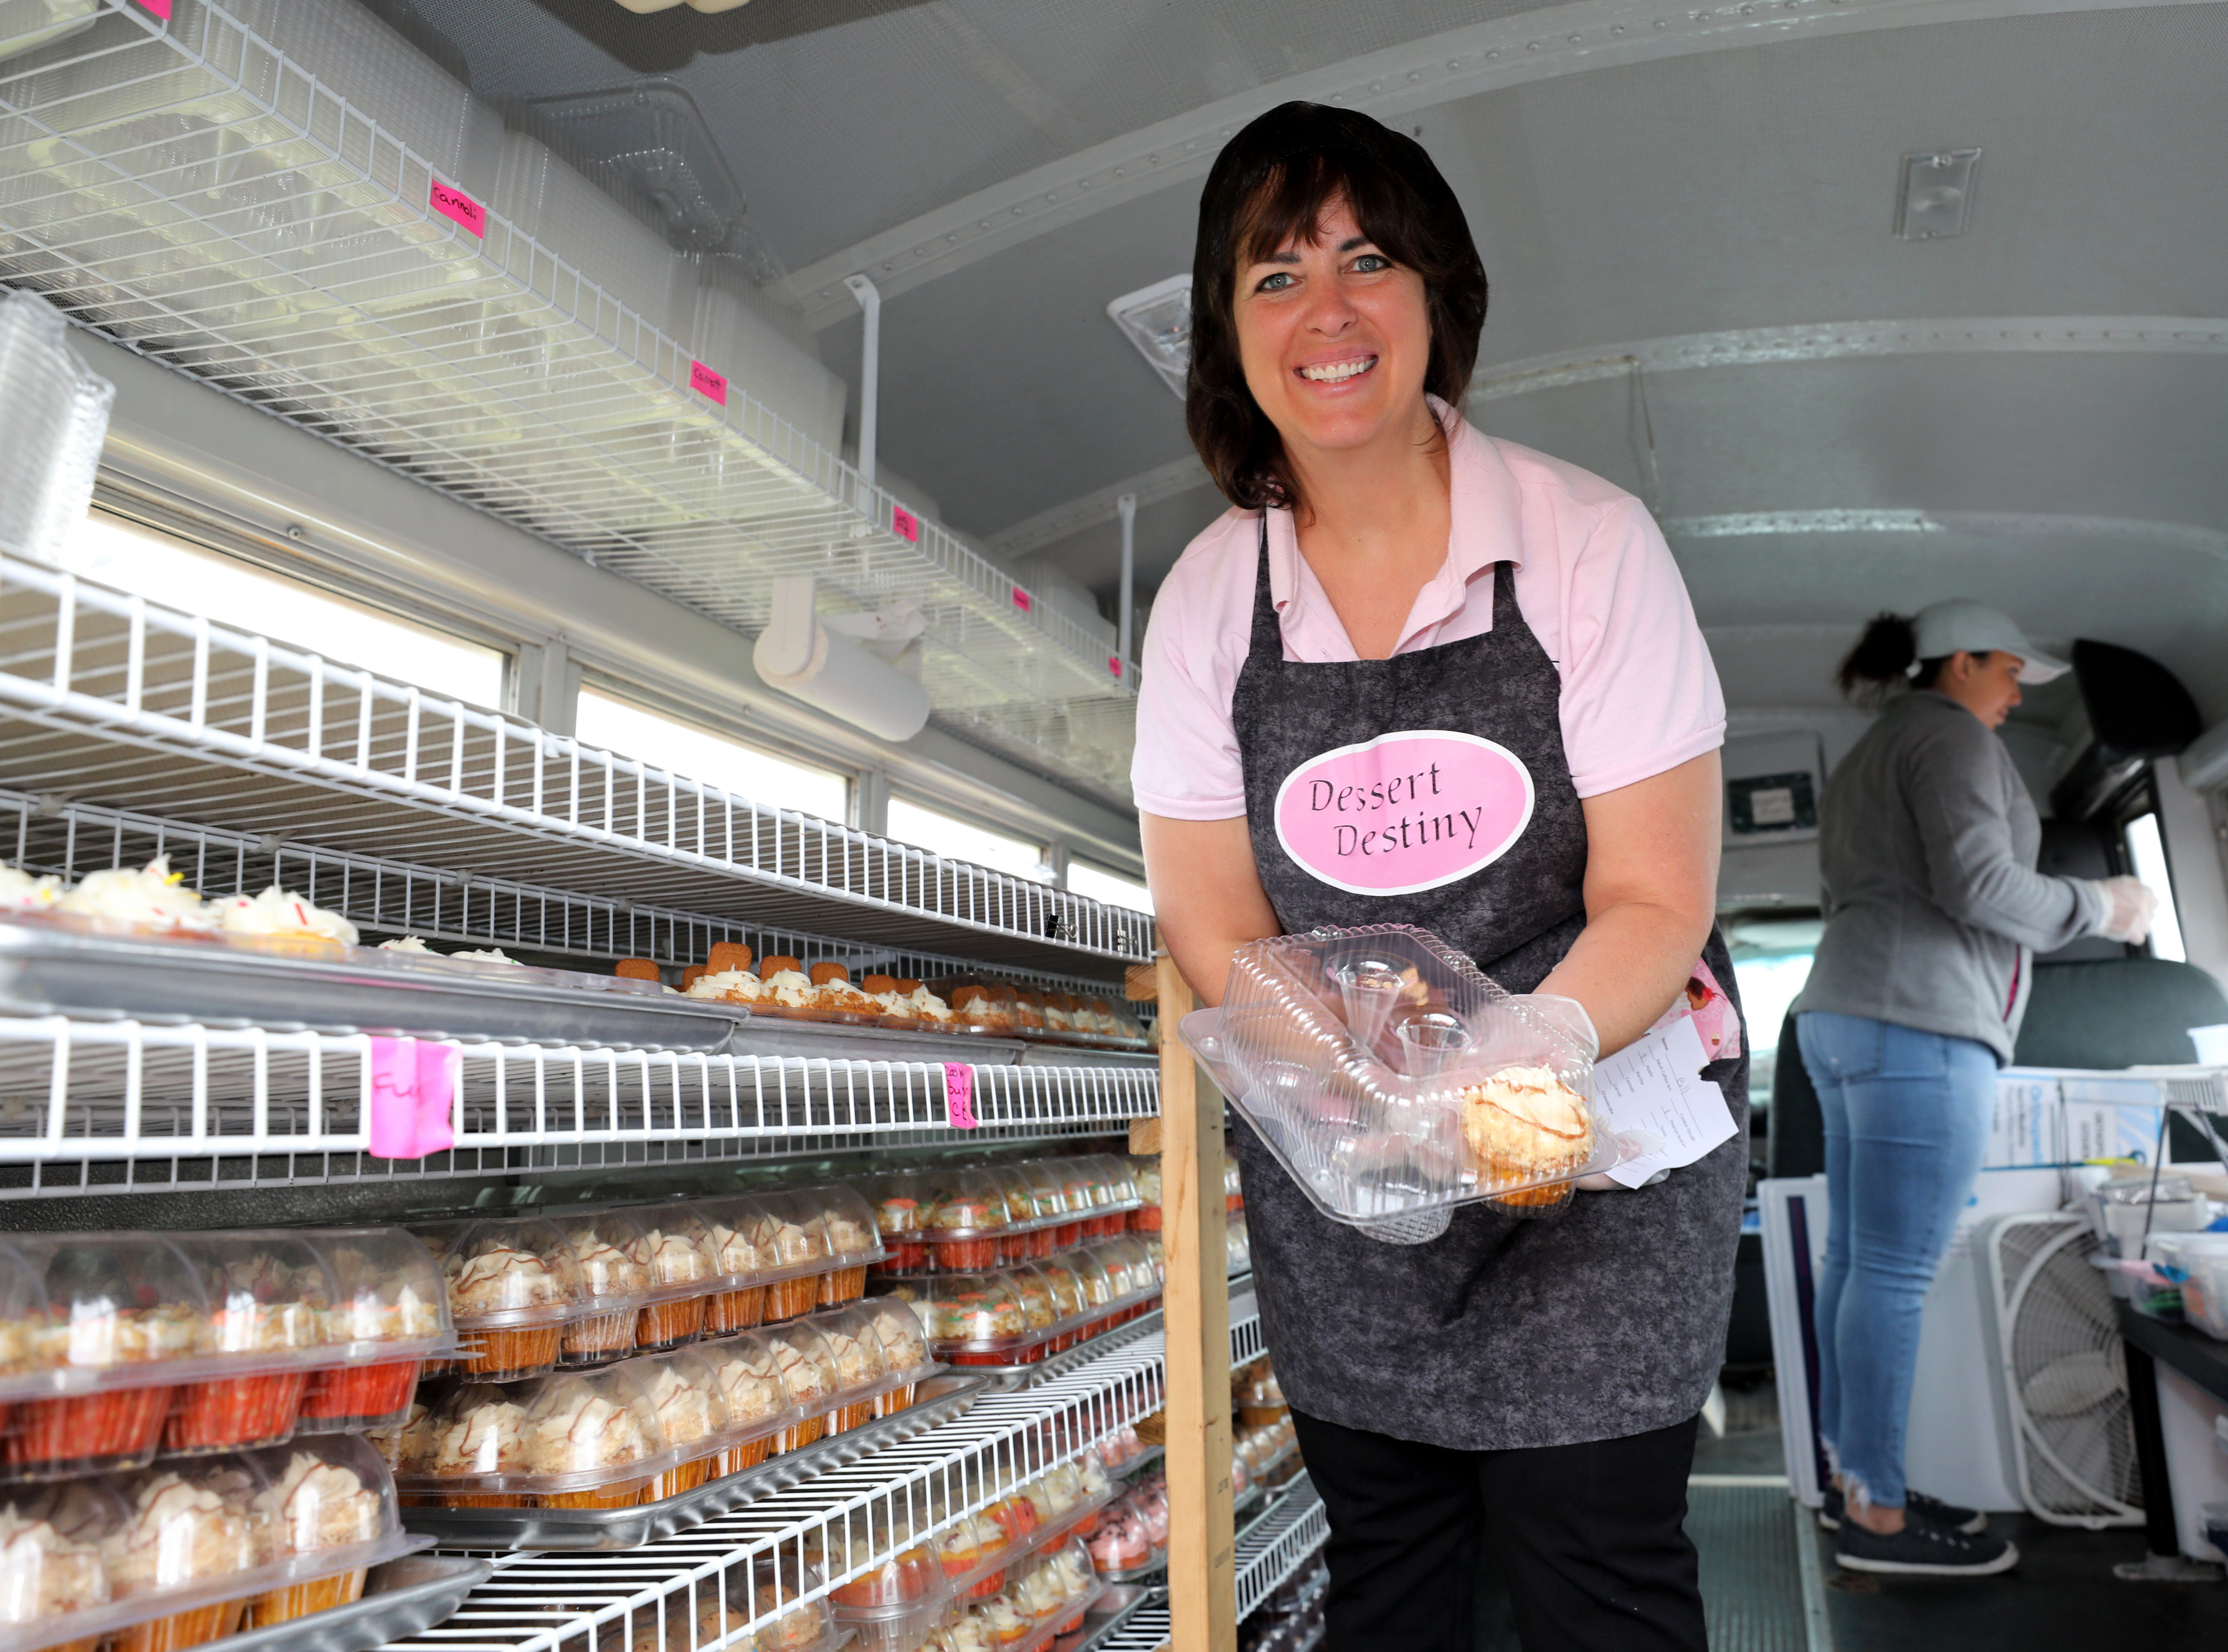 Tina Plass with the Dessert Destiny cupcake booth, gathers selections of cupcakes, during the K104.7 Cupcake Festival at the Stormville Airport, May 4, 2019.